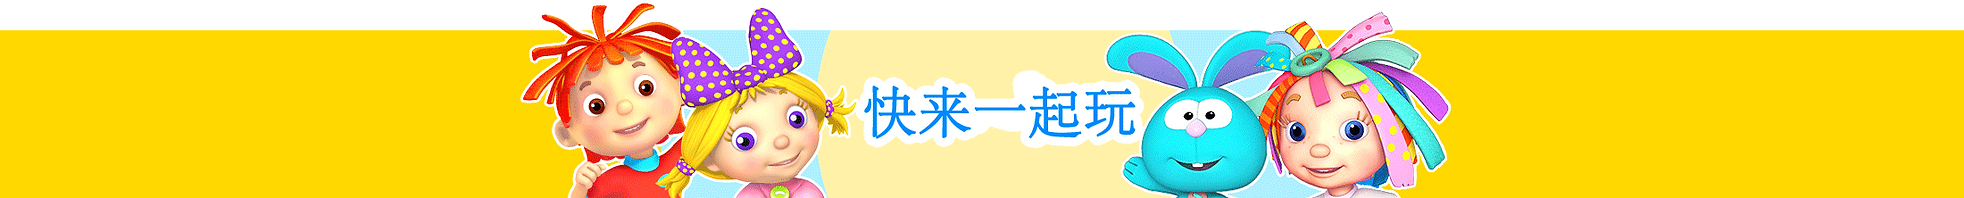 Mandarin---Come-in-and-Play-Banner.png